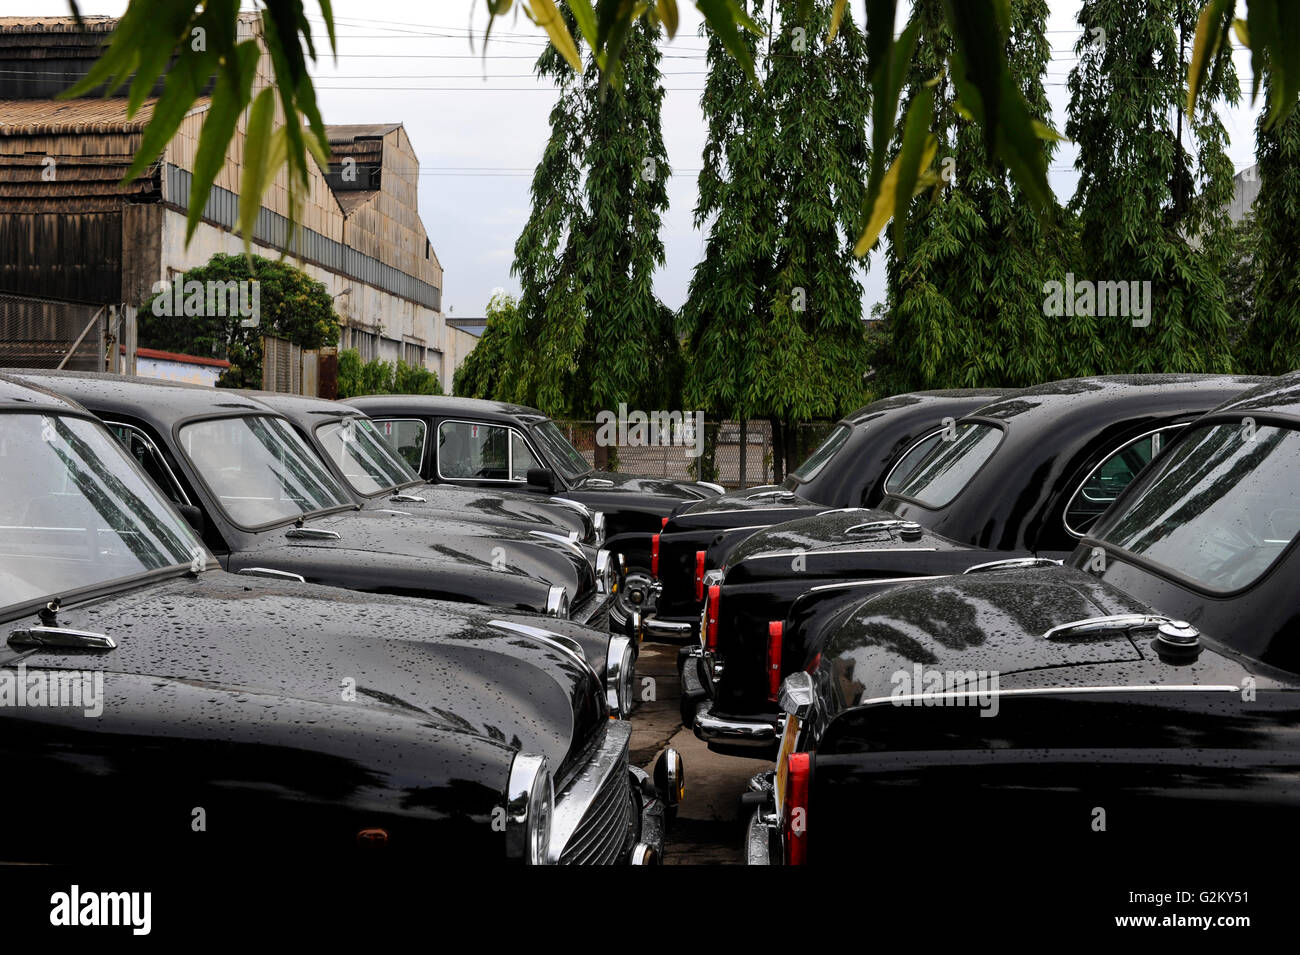 INDIA Kolkata Calcutta , HM Hind Motors car factory, here the Ambassador is still produced after license of Oxford - Stock Image